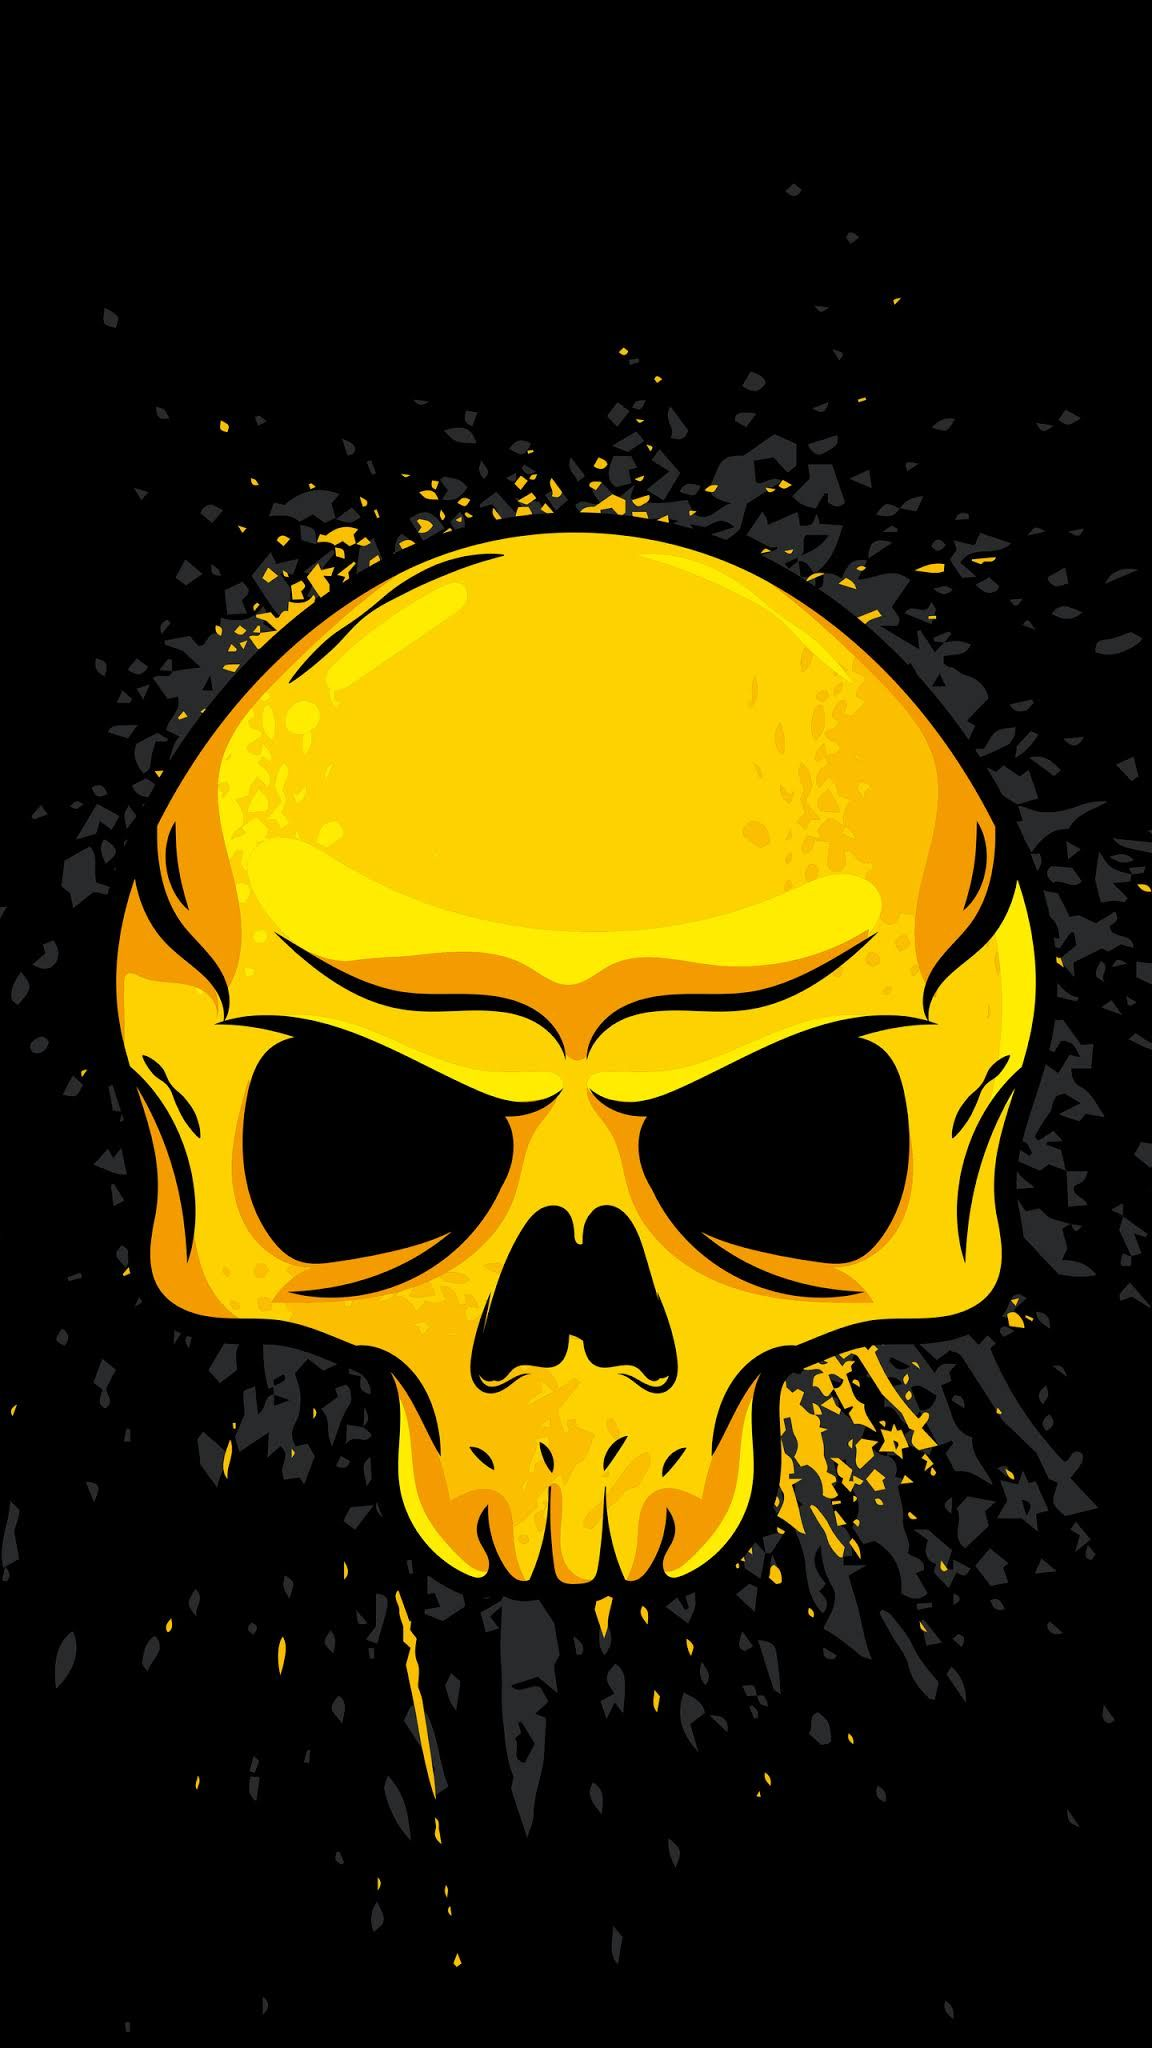 Gold Skull Minimalist Mobile Wallpaper Skull Wallpaper Iphone Skull Wallpaper Mobile Wallpaper